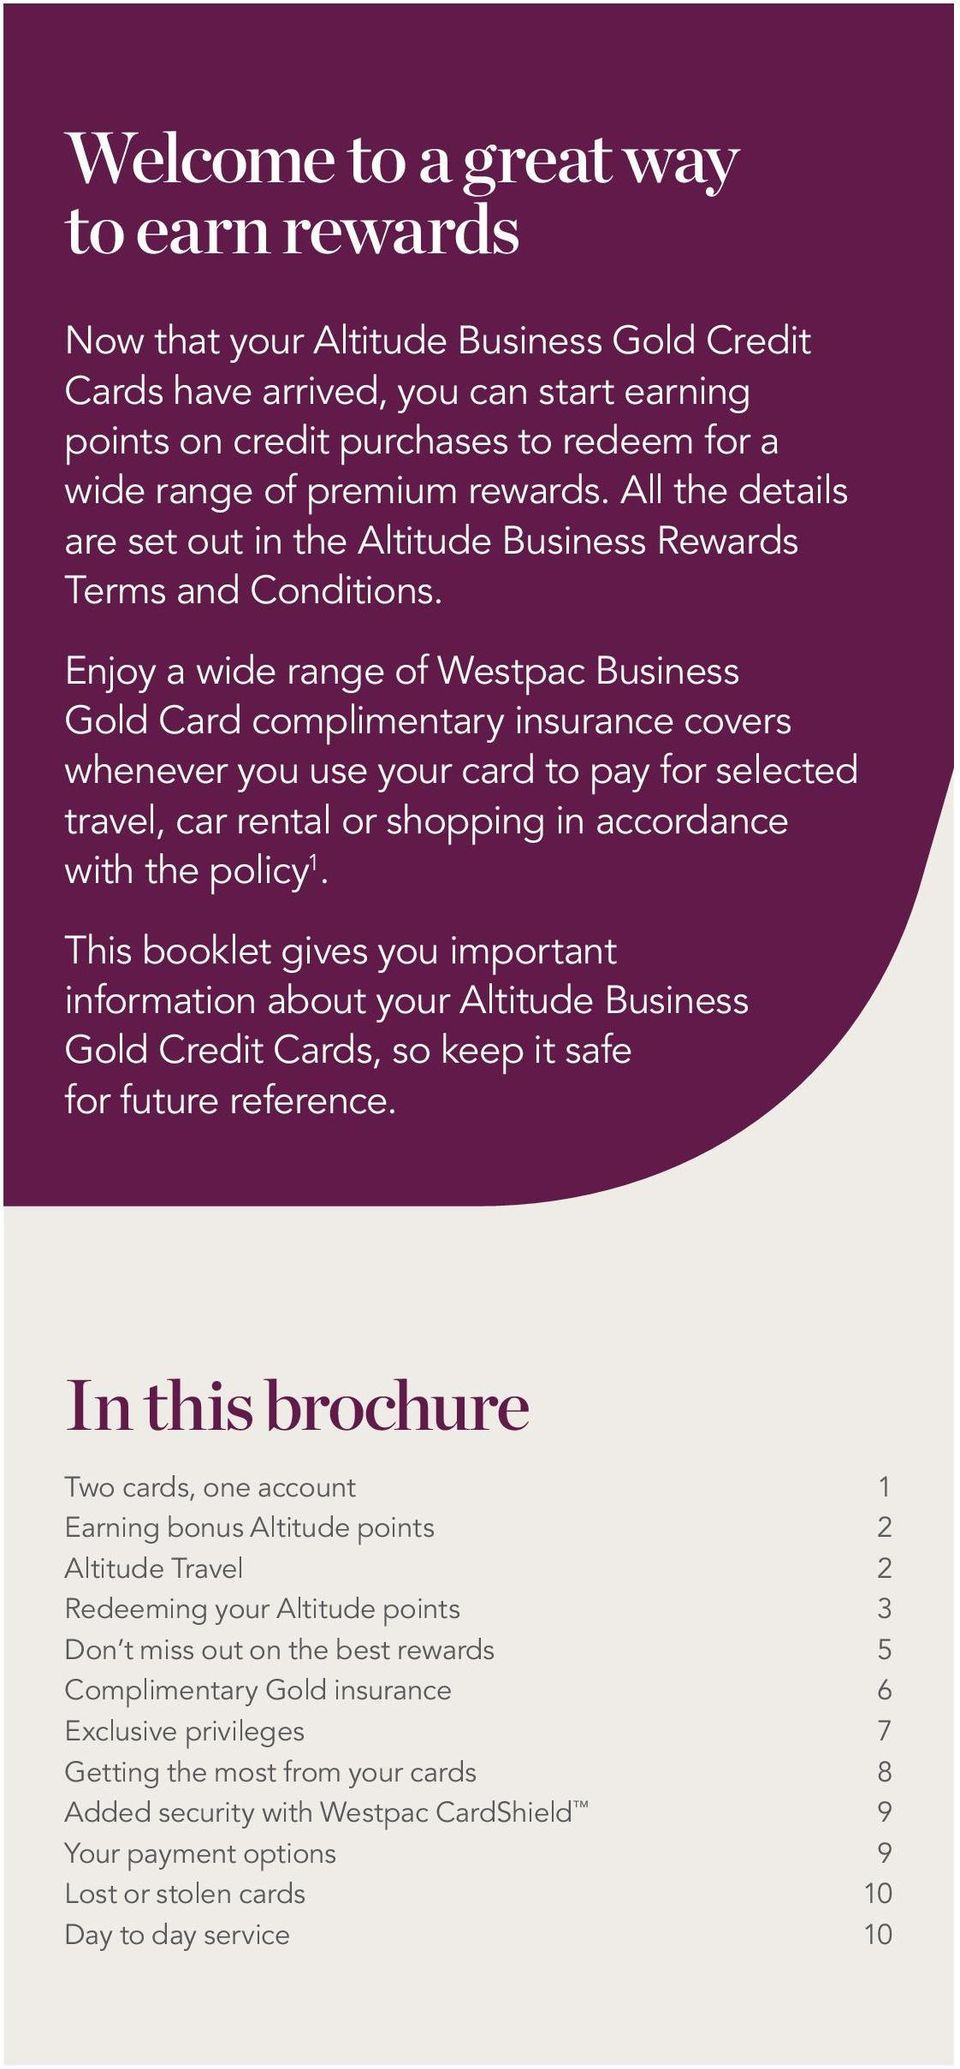 Enjoy a wide range of Westpac Business Gold Card complimentary insurance covers whenever you use your card to pay for selected travel, car rental or shopping in accordance with the policy 1.